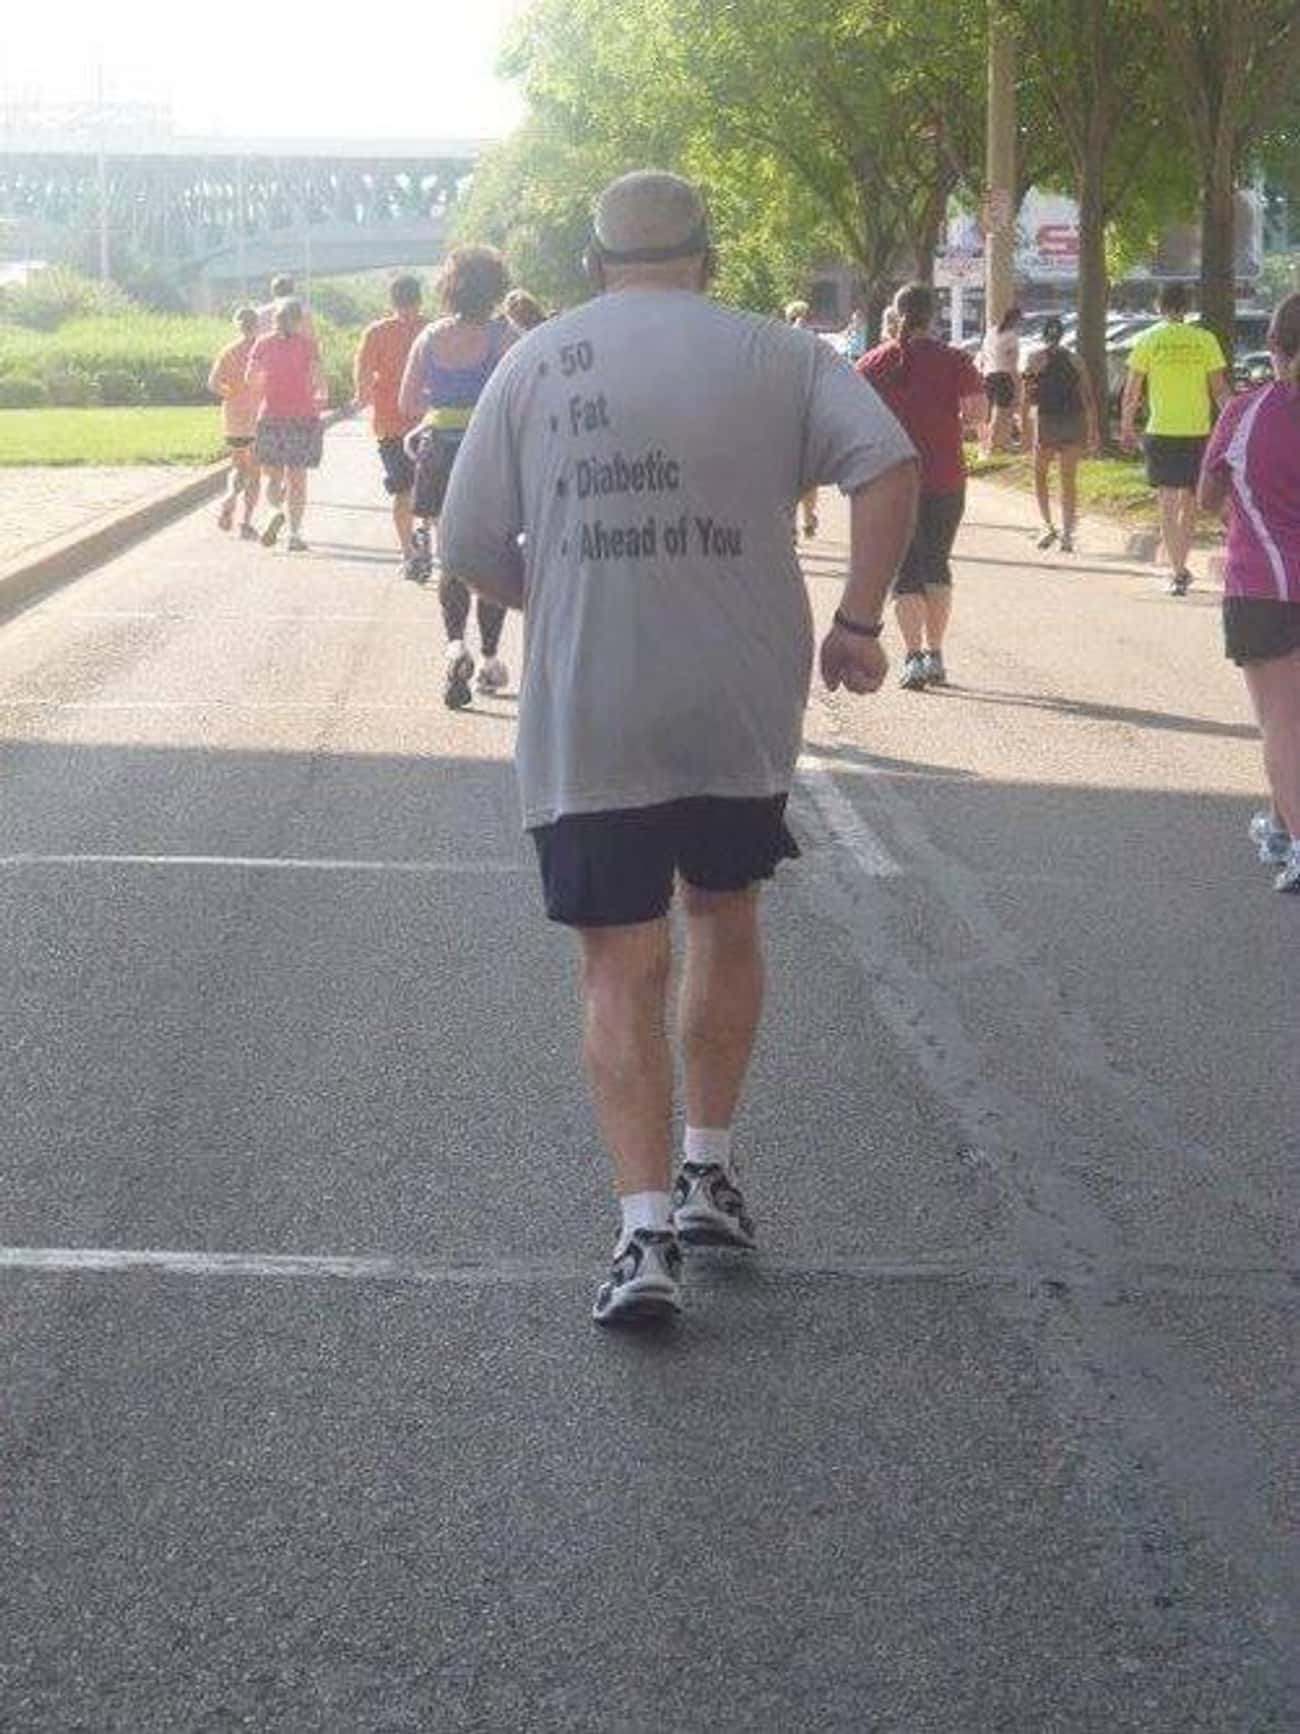 This Guy Who Makes His Argumen is listed (or ranked) 1 on the list 15 Amazing Old People Wearing Funny T-Shirts